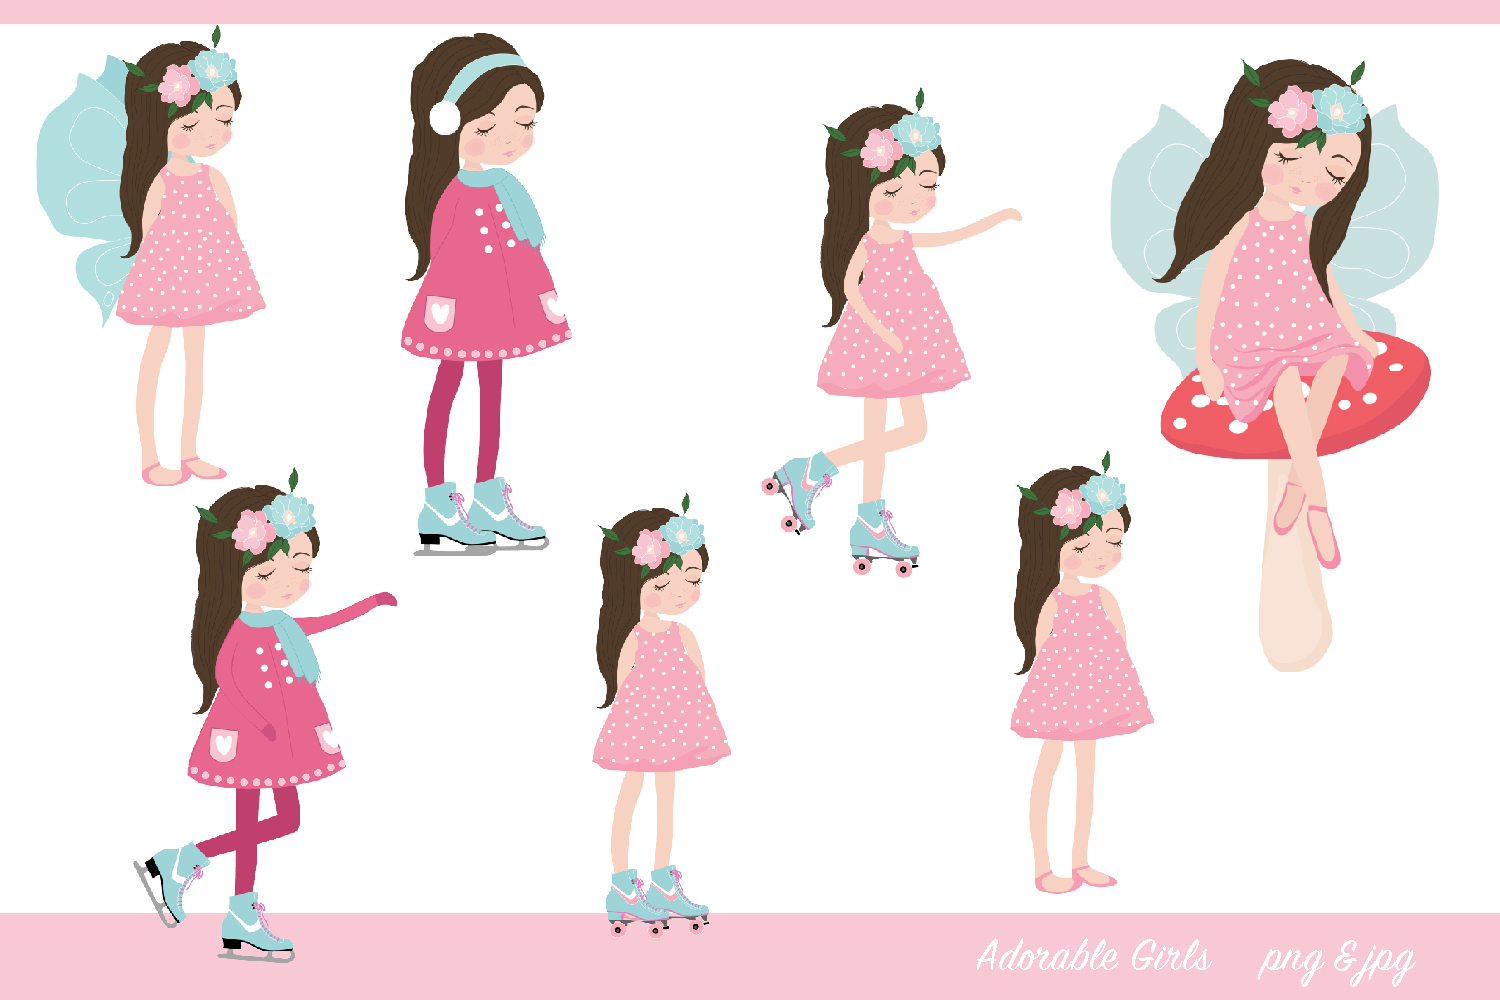 Adorable Girls Clipart-, roller skating, fairy, ice skating example image 1